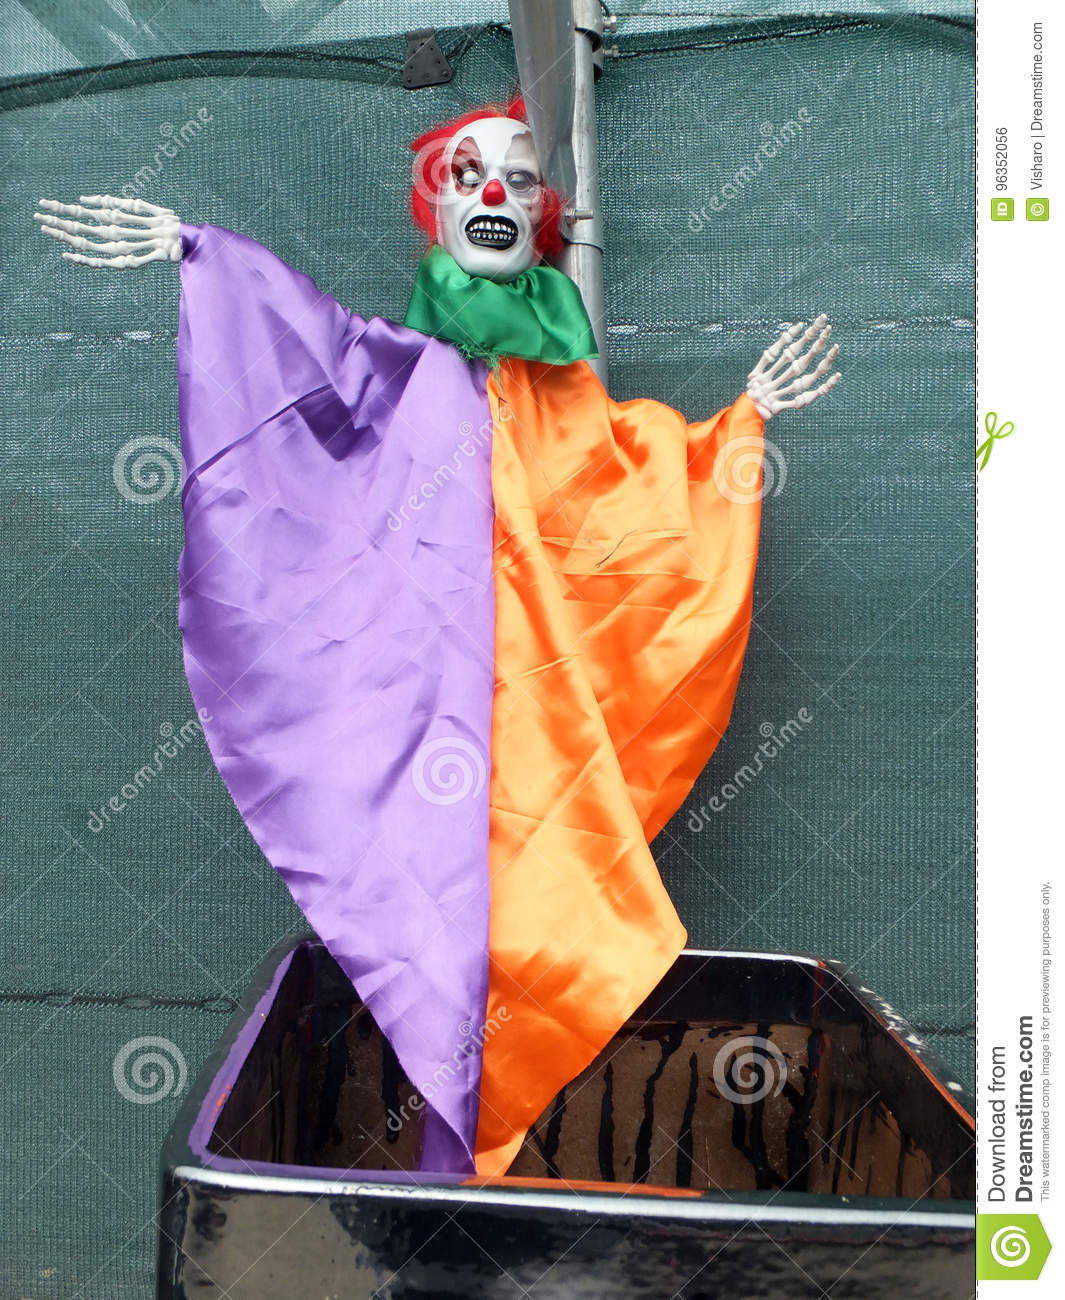 Scary Clown Figure Stock Photo. Image Of Ghost, Clown